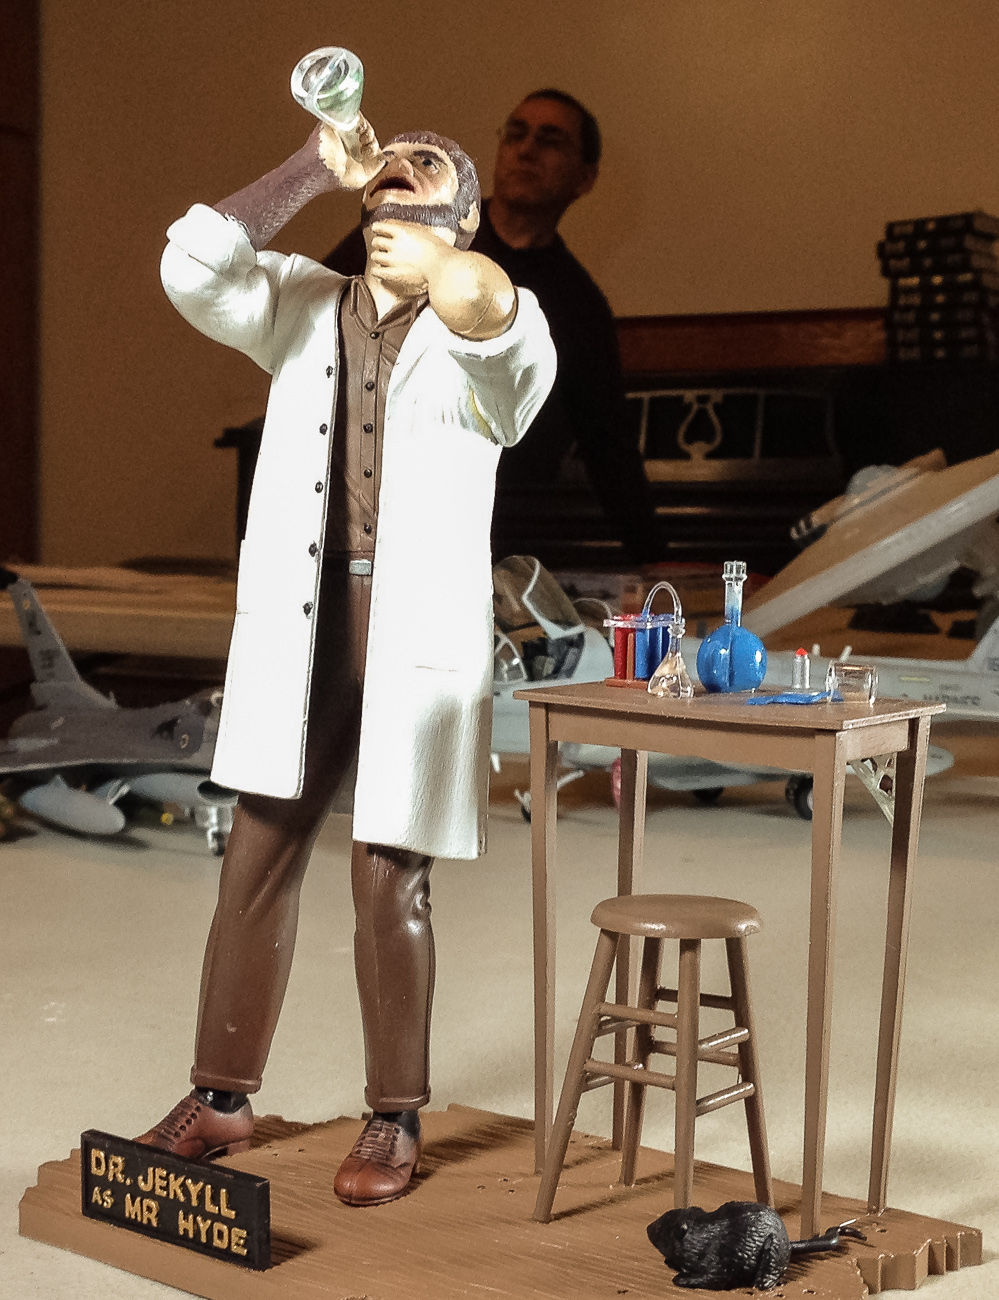 A Moebius re-pop of Aurora's Dr. Jekyll as Mr. Hyde figure assembled and painted by Brian Nerino.